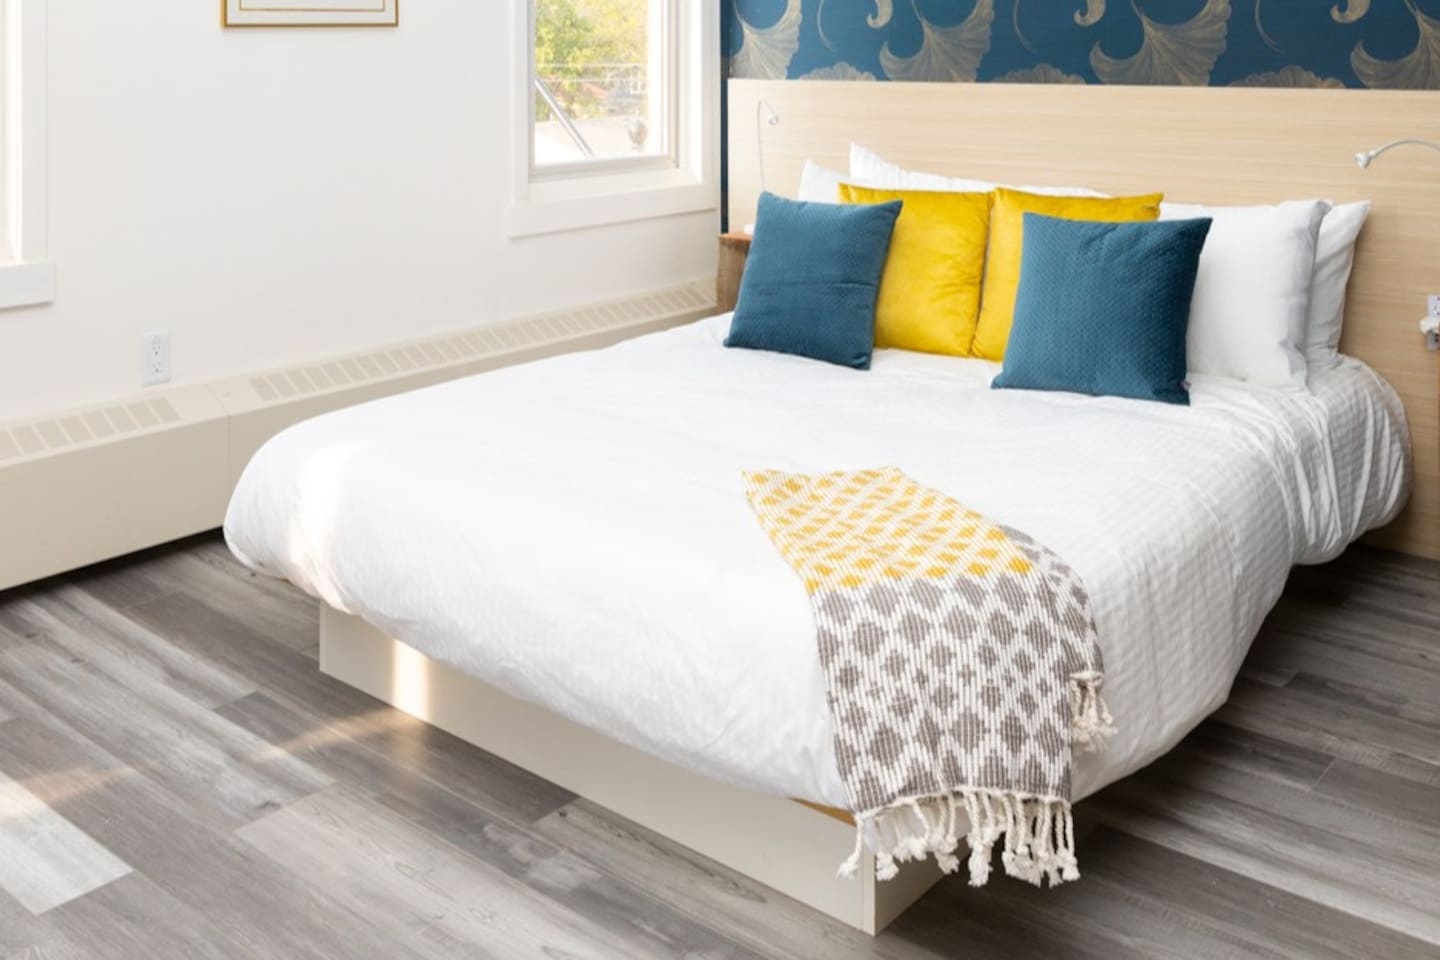 Our comfy, plush foam mattresses, fluffy duvets and extra soft pillows and bedding were chosen to ensure it feels like you're sleeping on a cloud!